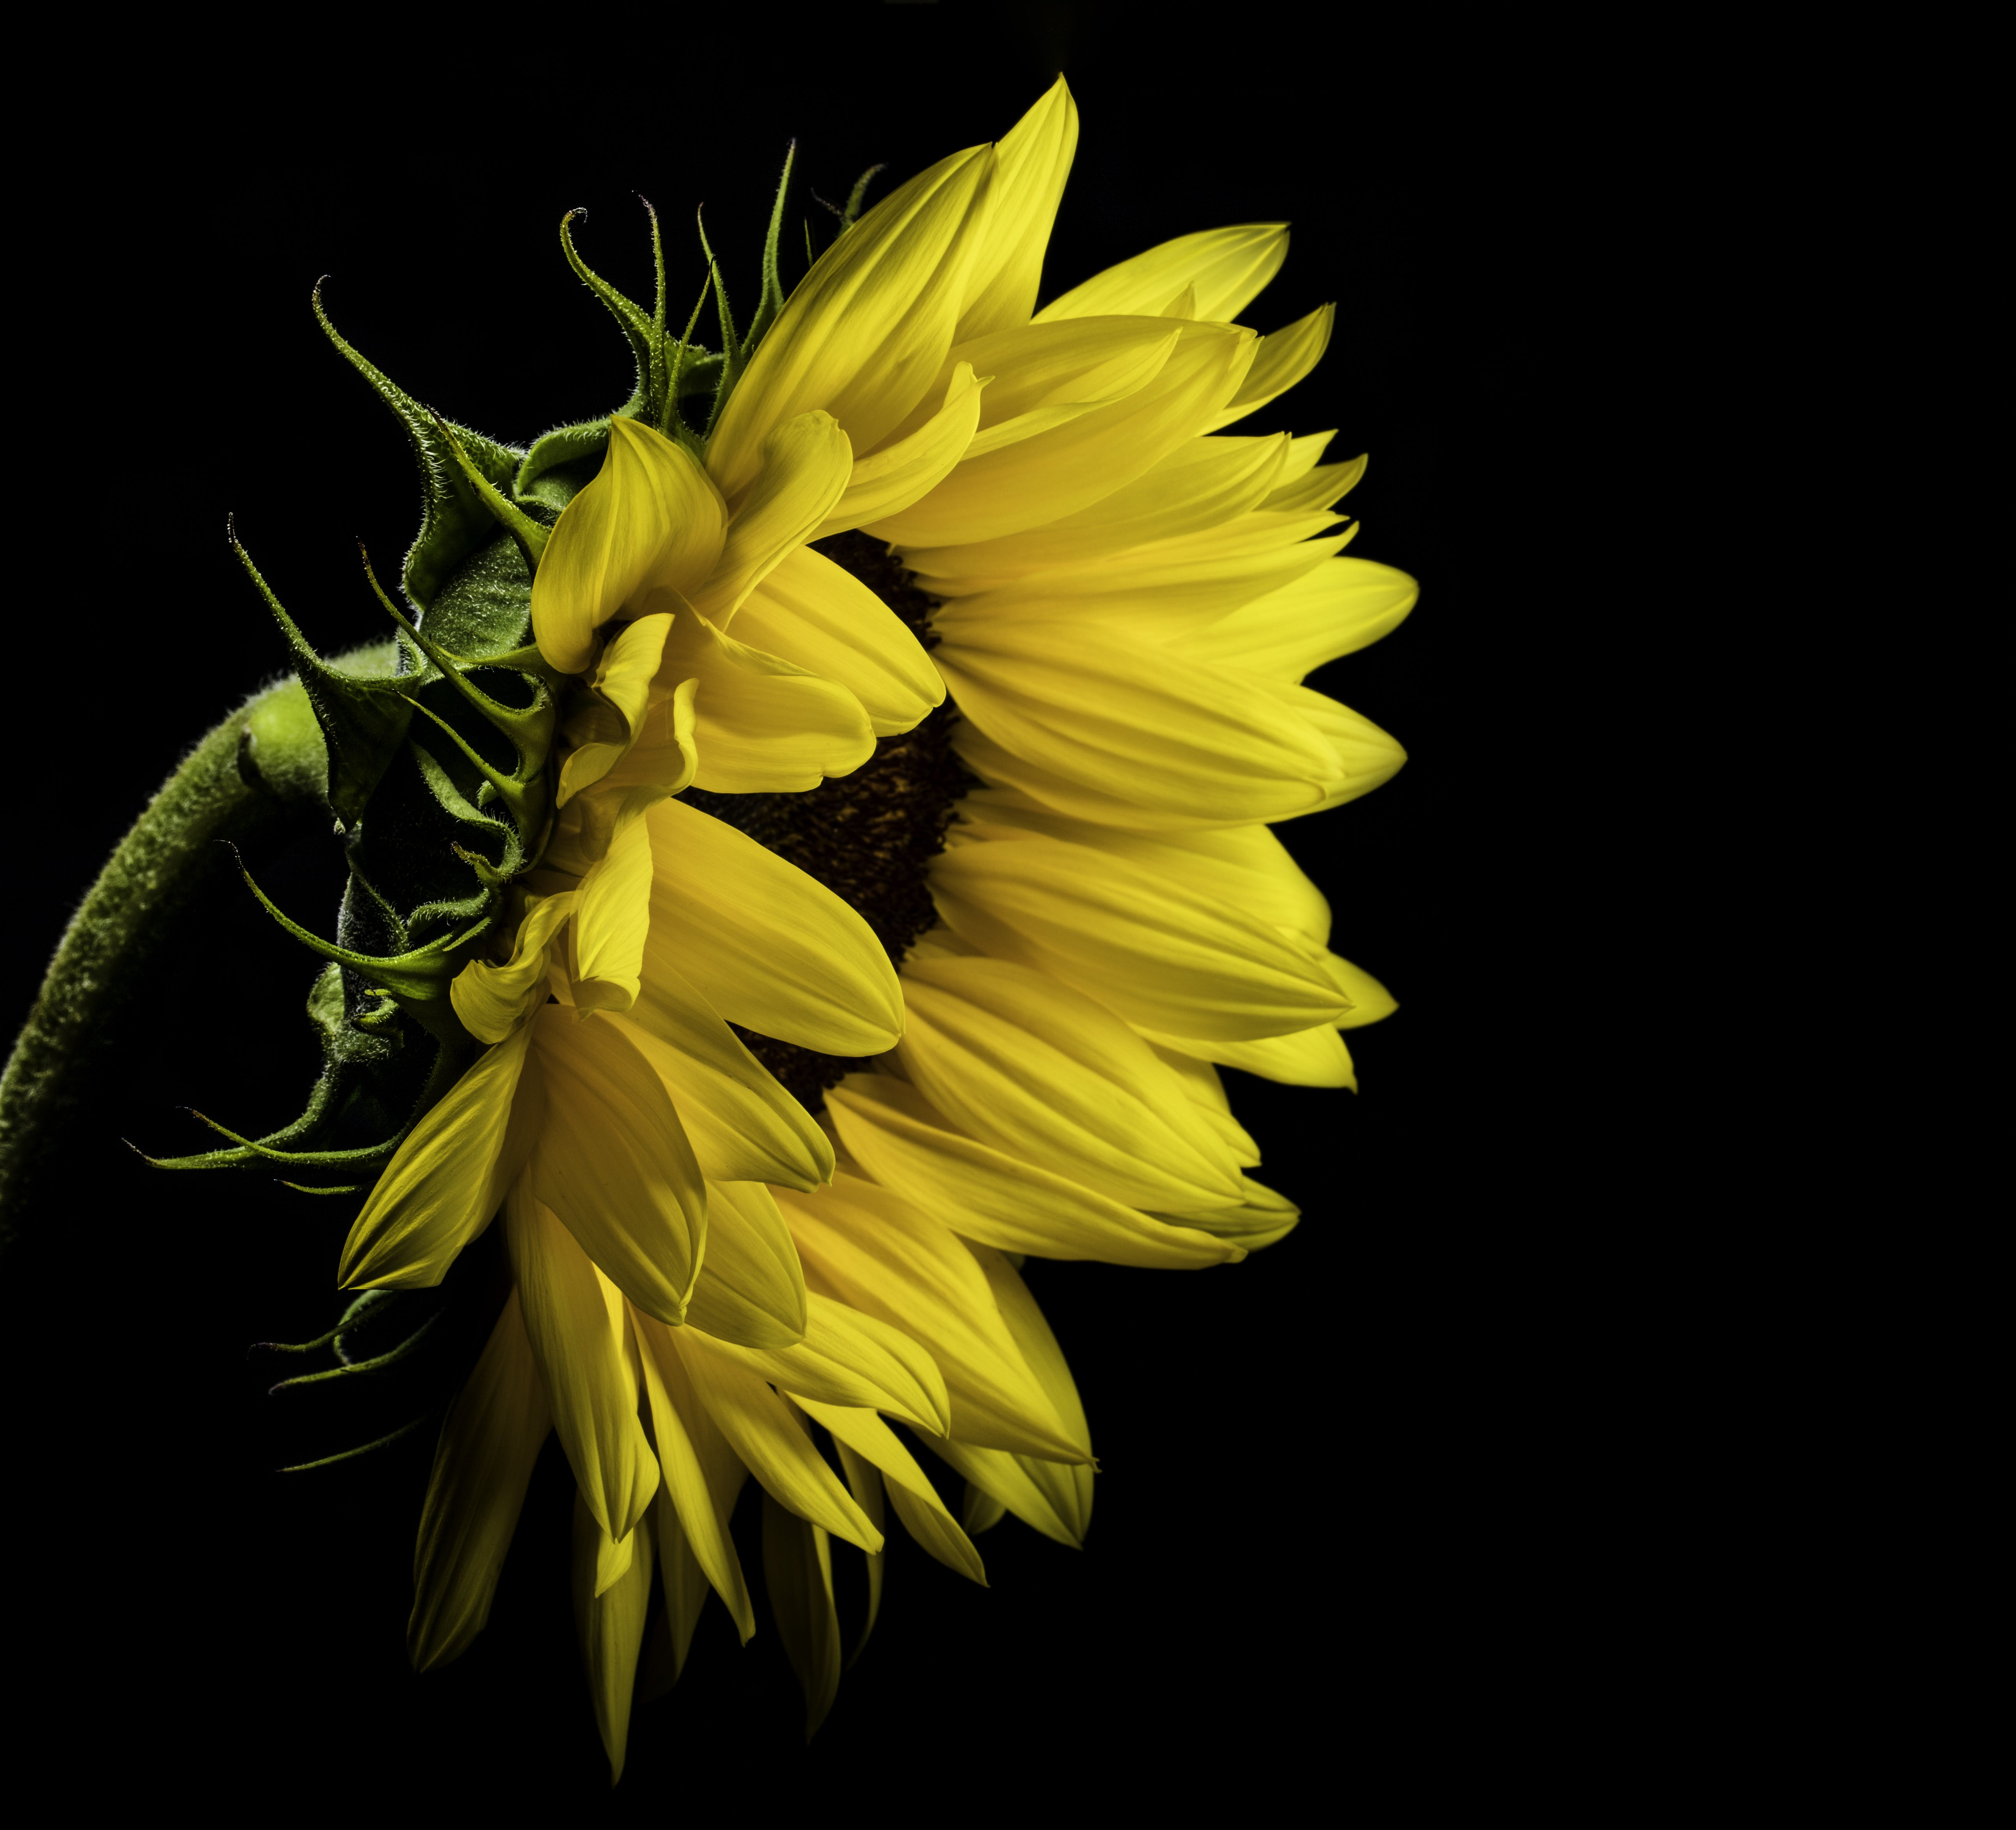 Close Photo of Yellow Sunflower on Black Background